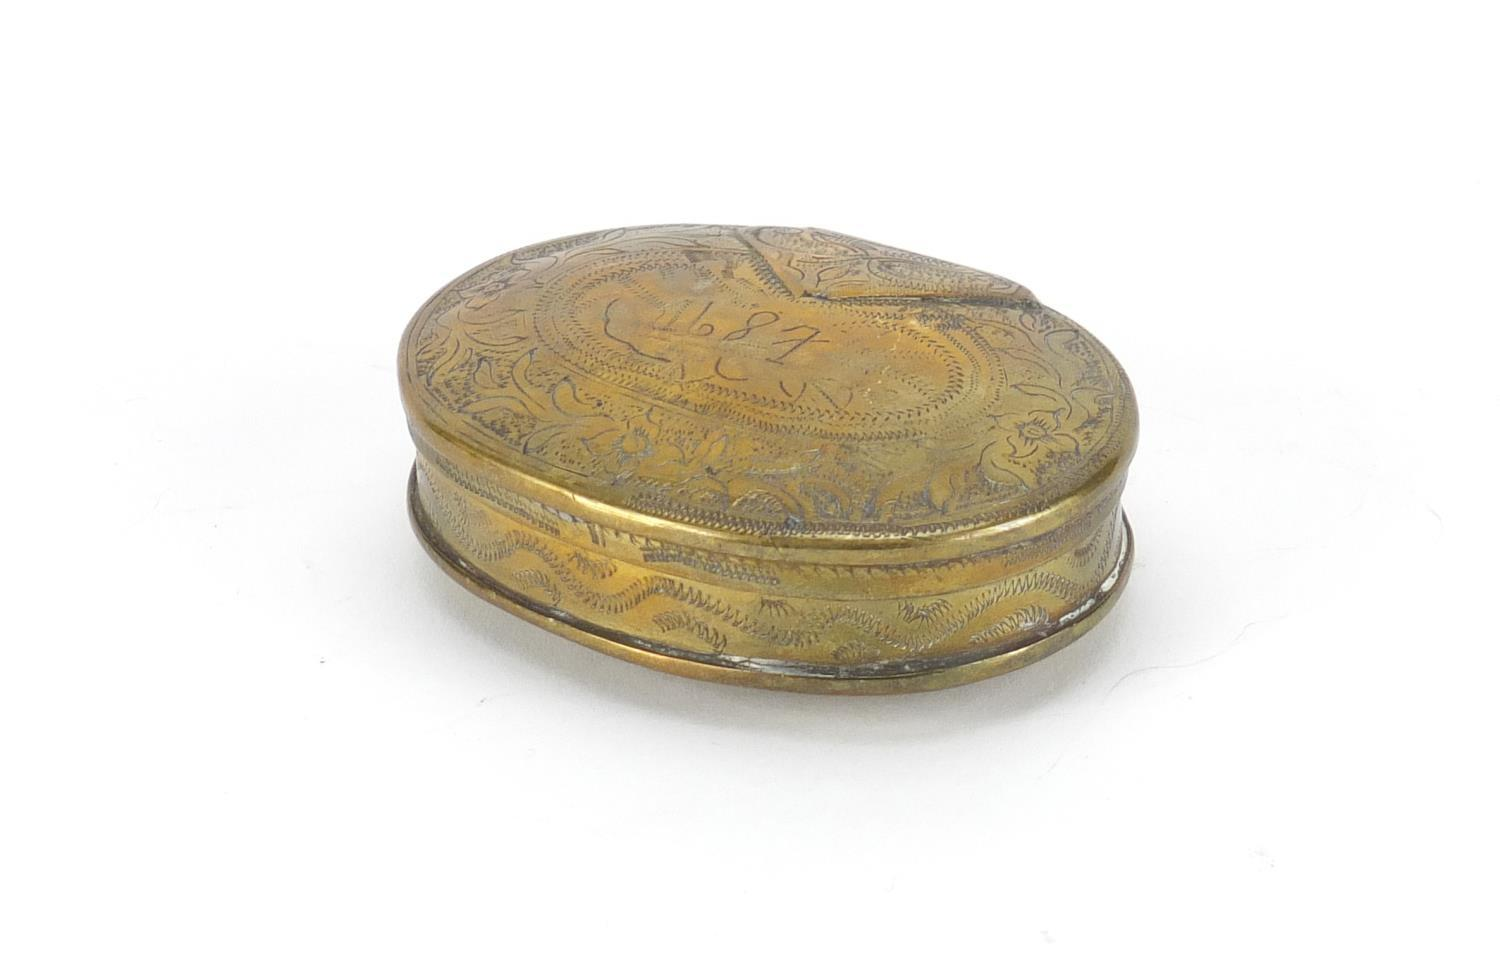 Lot 48 - Antique Dutch oval brass tobacco box, engraved with flowers, dated 1687, 8.5cm wide :For Further